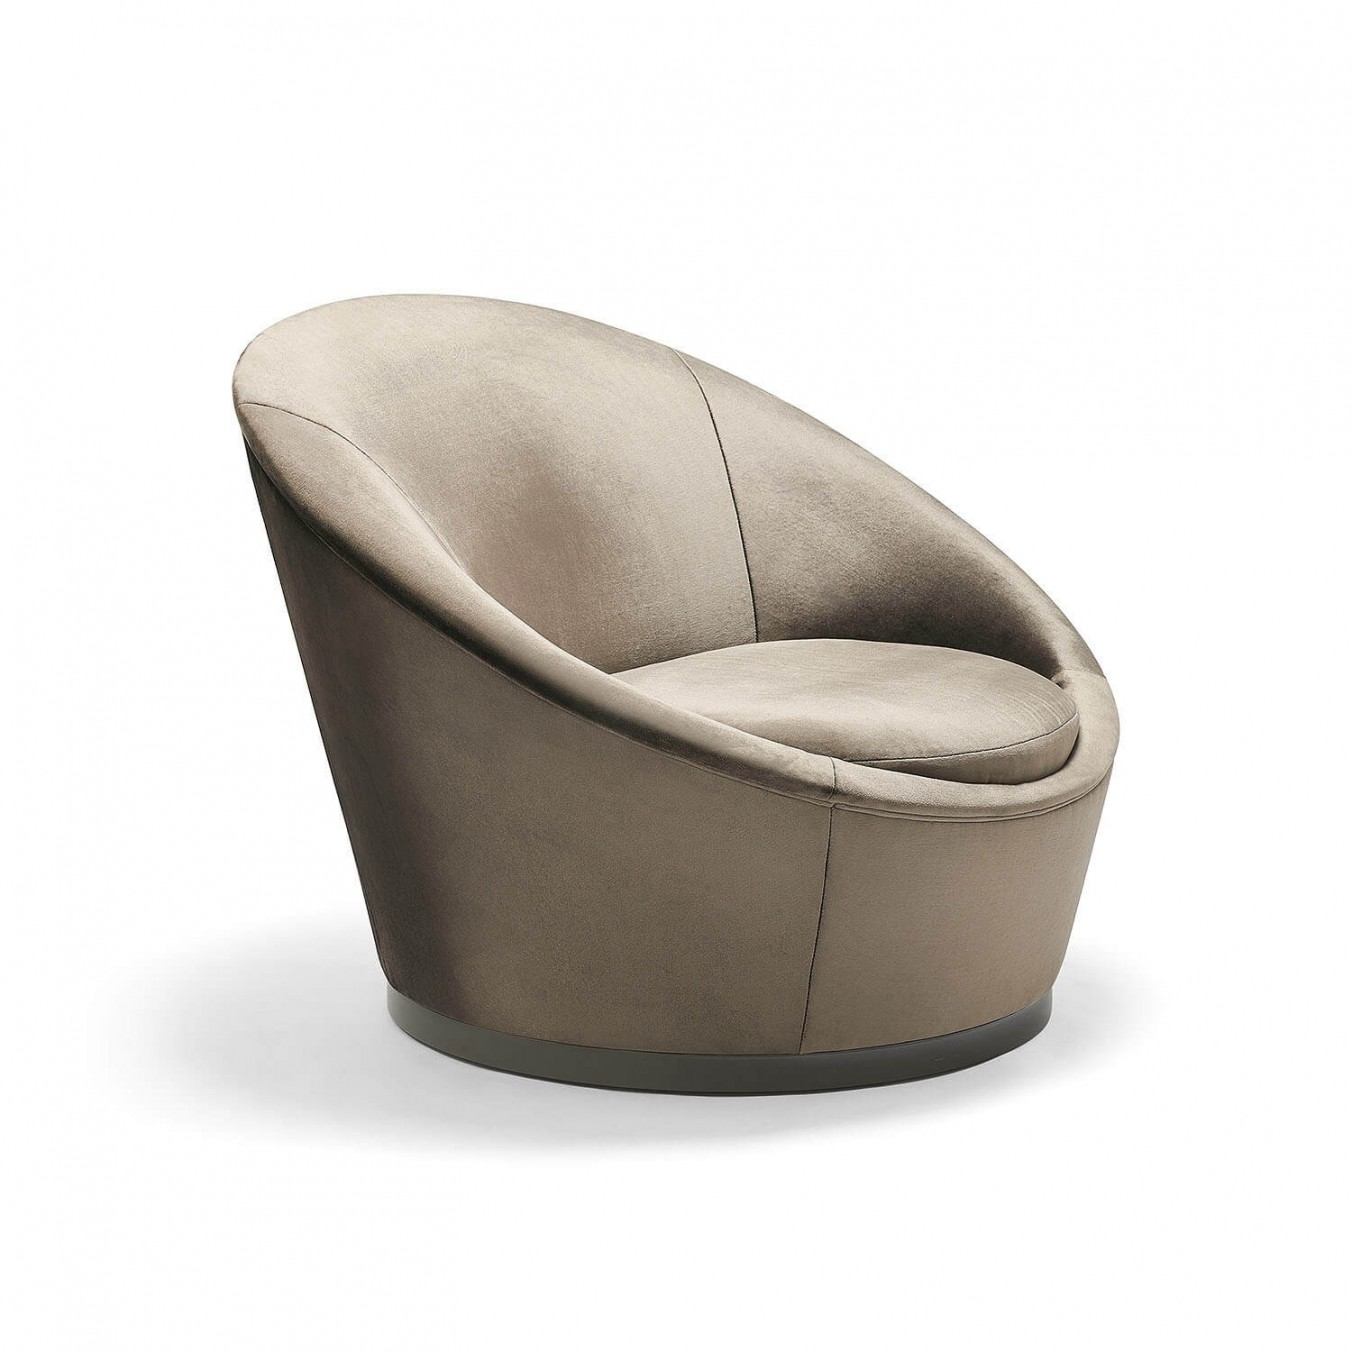 New Life Armchair